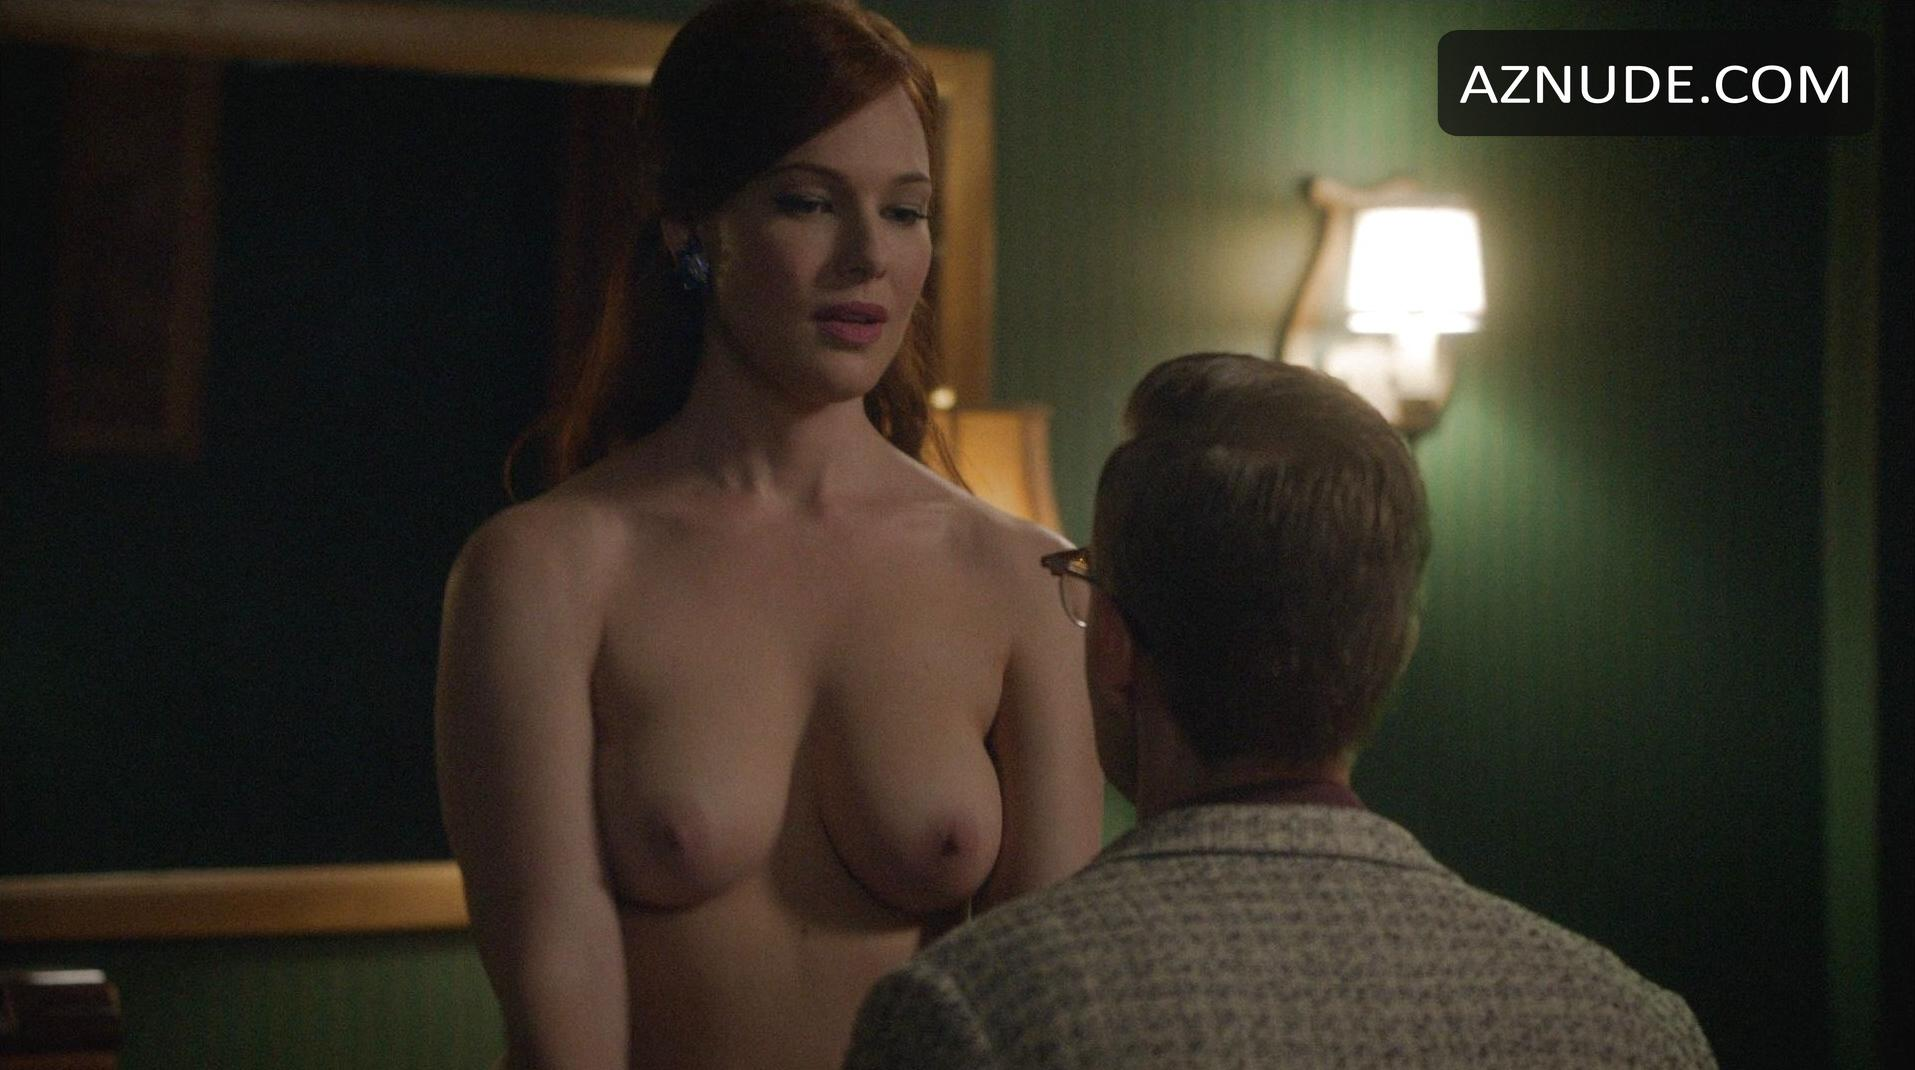 Erin cummings nude naked (96 pictures)